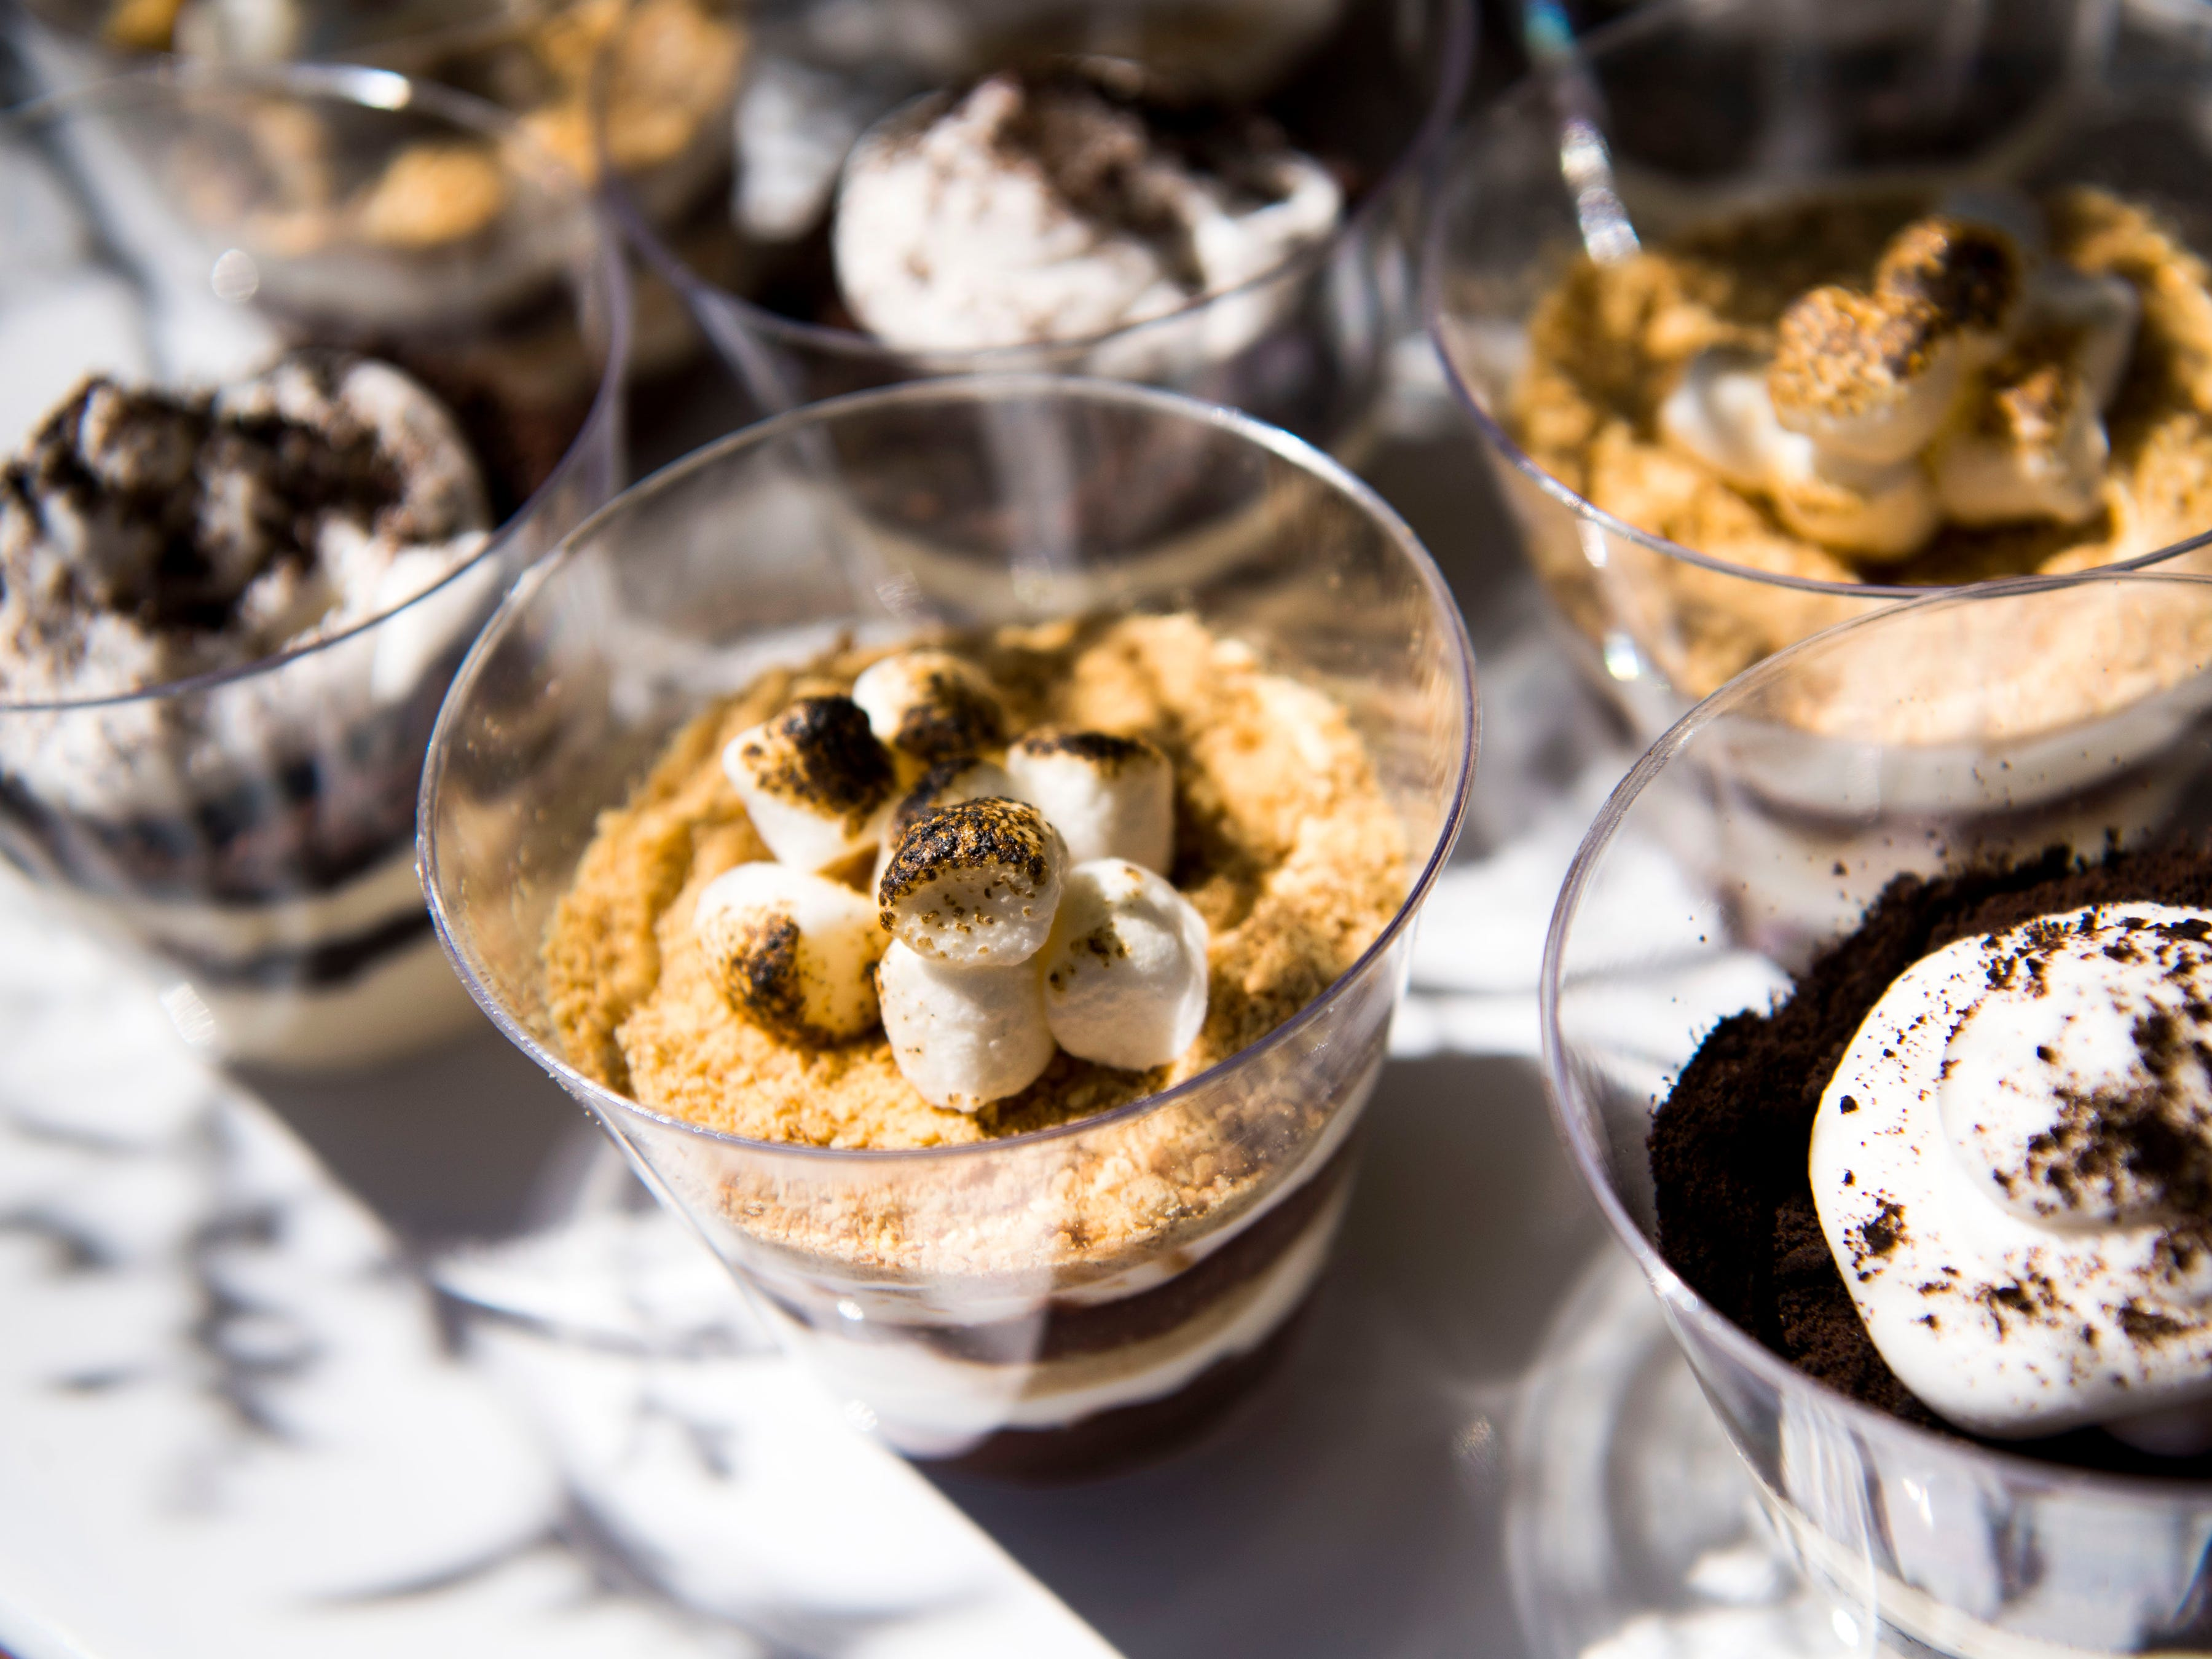 Dessert parfaits made by The Sugar Queen food truck on Saturday, March 30, 2019.